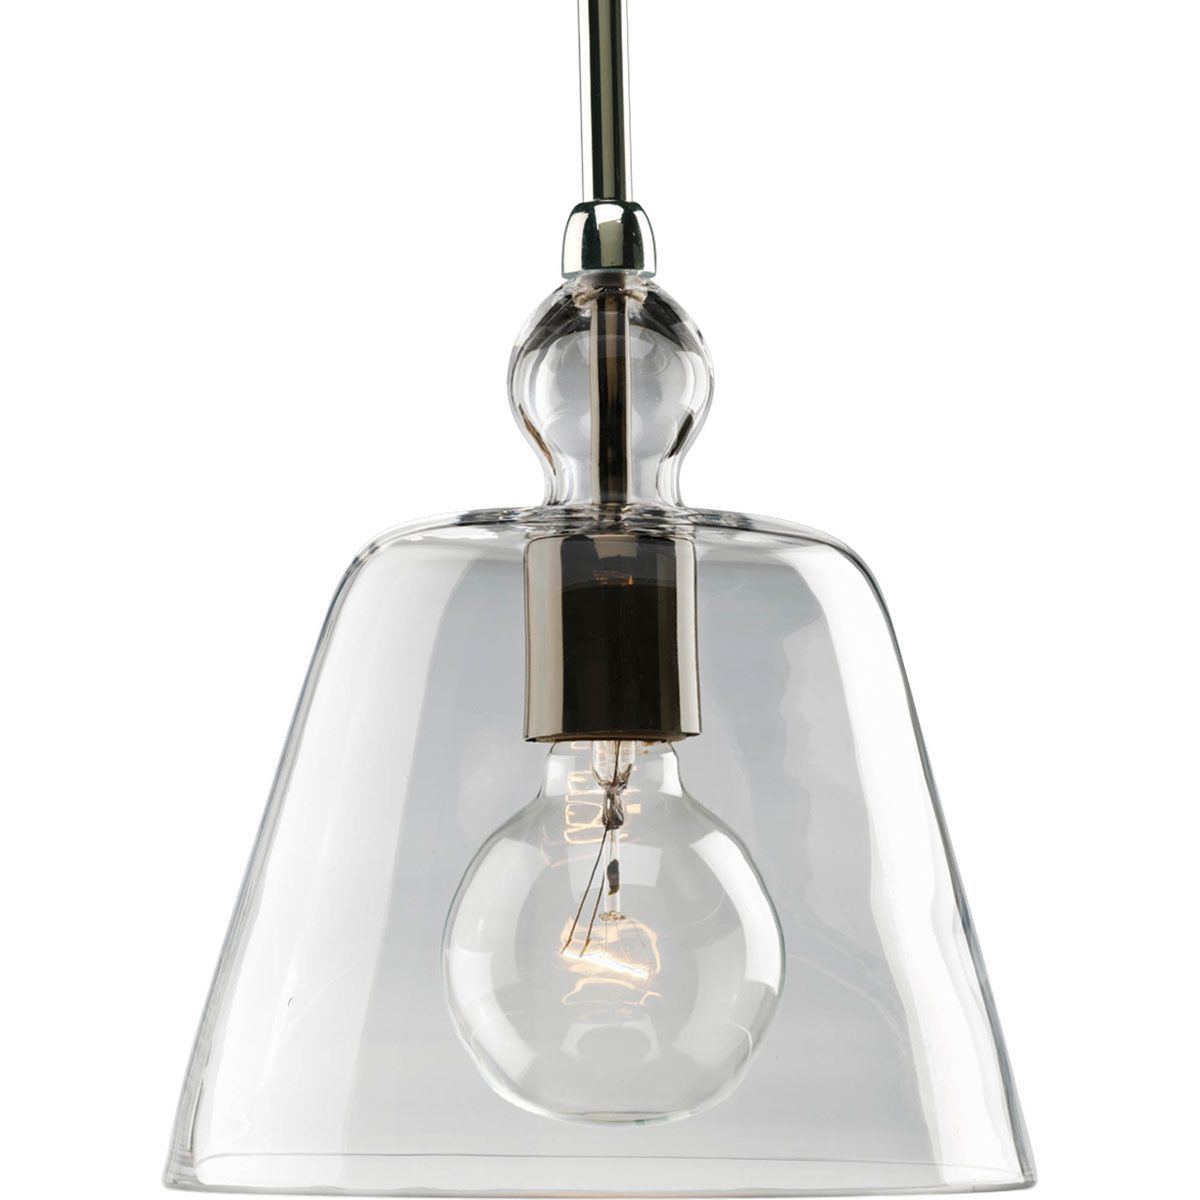 Onelight minipendant products pinterest mini pendant and